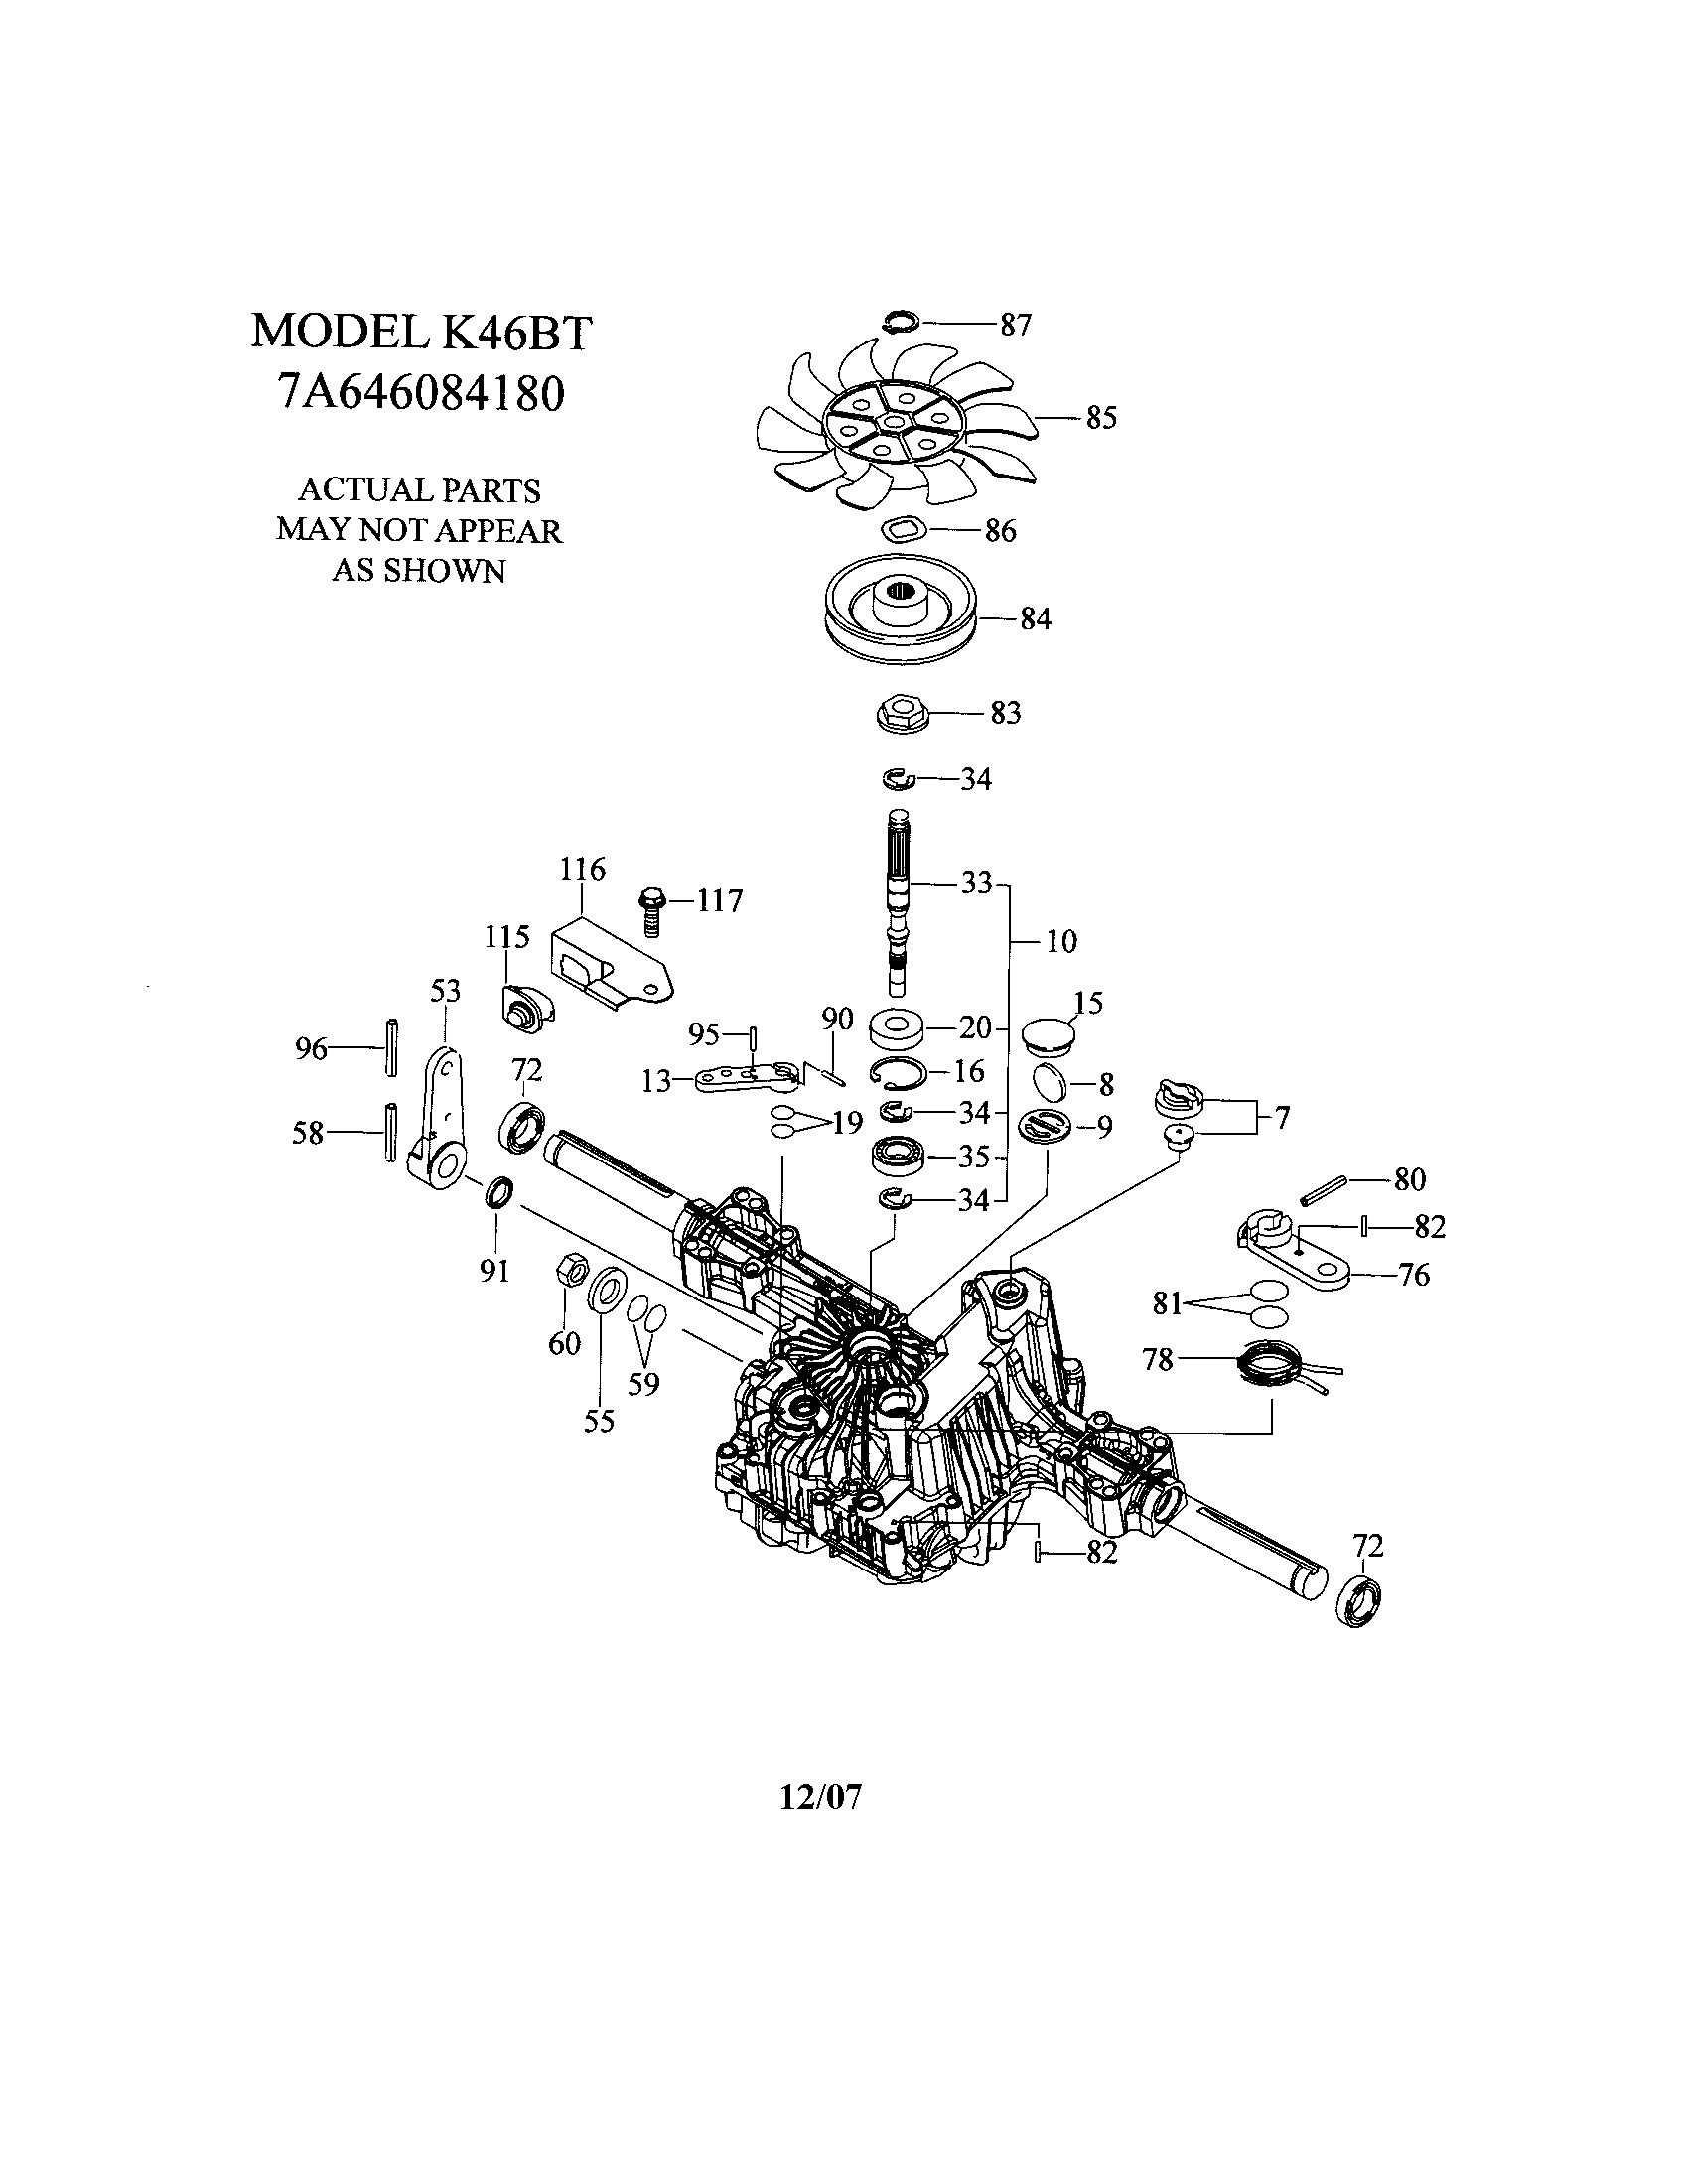 TRANSAXLE-K46BT Diagram & Parts List for Model YTH2348